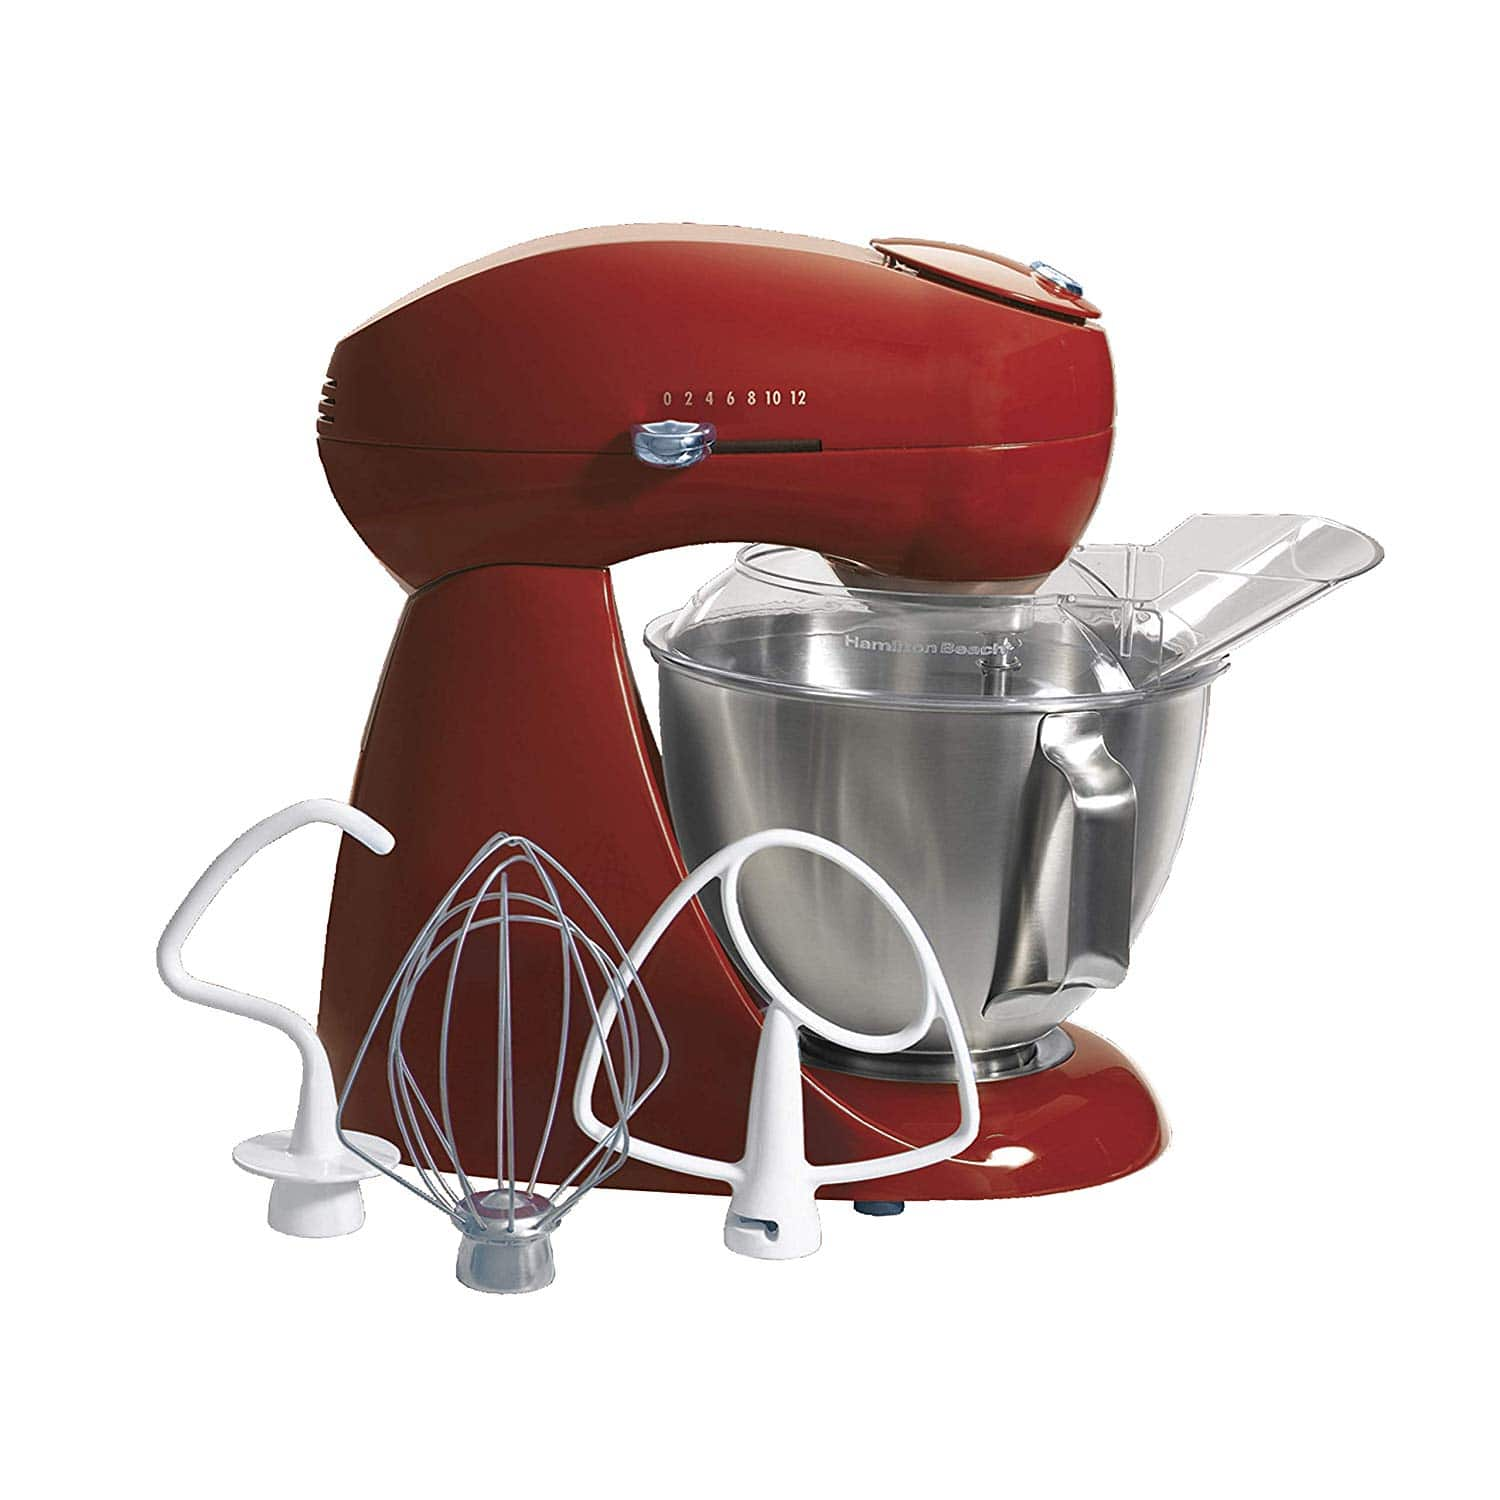 Hamilton Beach 63232 Eclectrics All-Metal Stand Mixer - Red for $139.99+FS